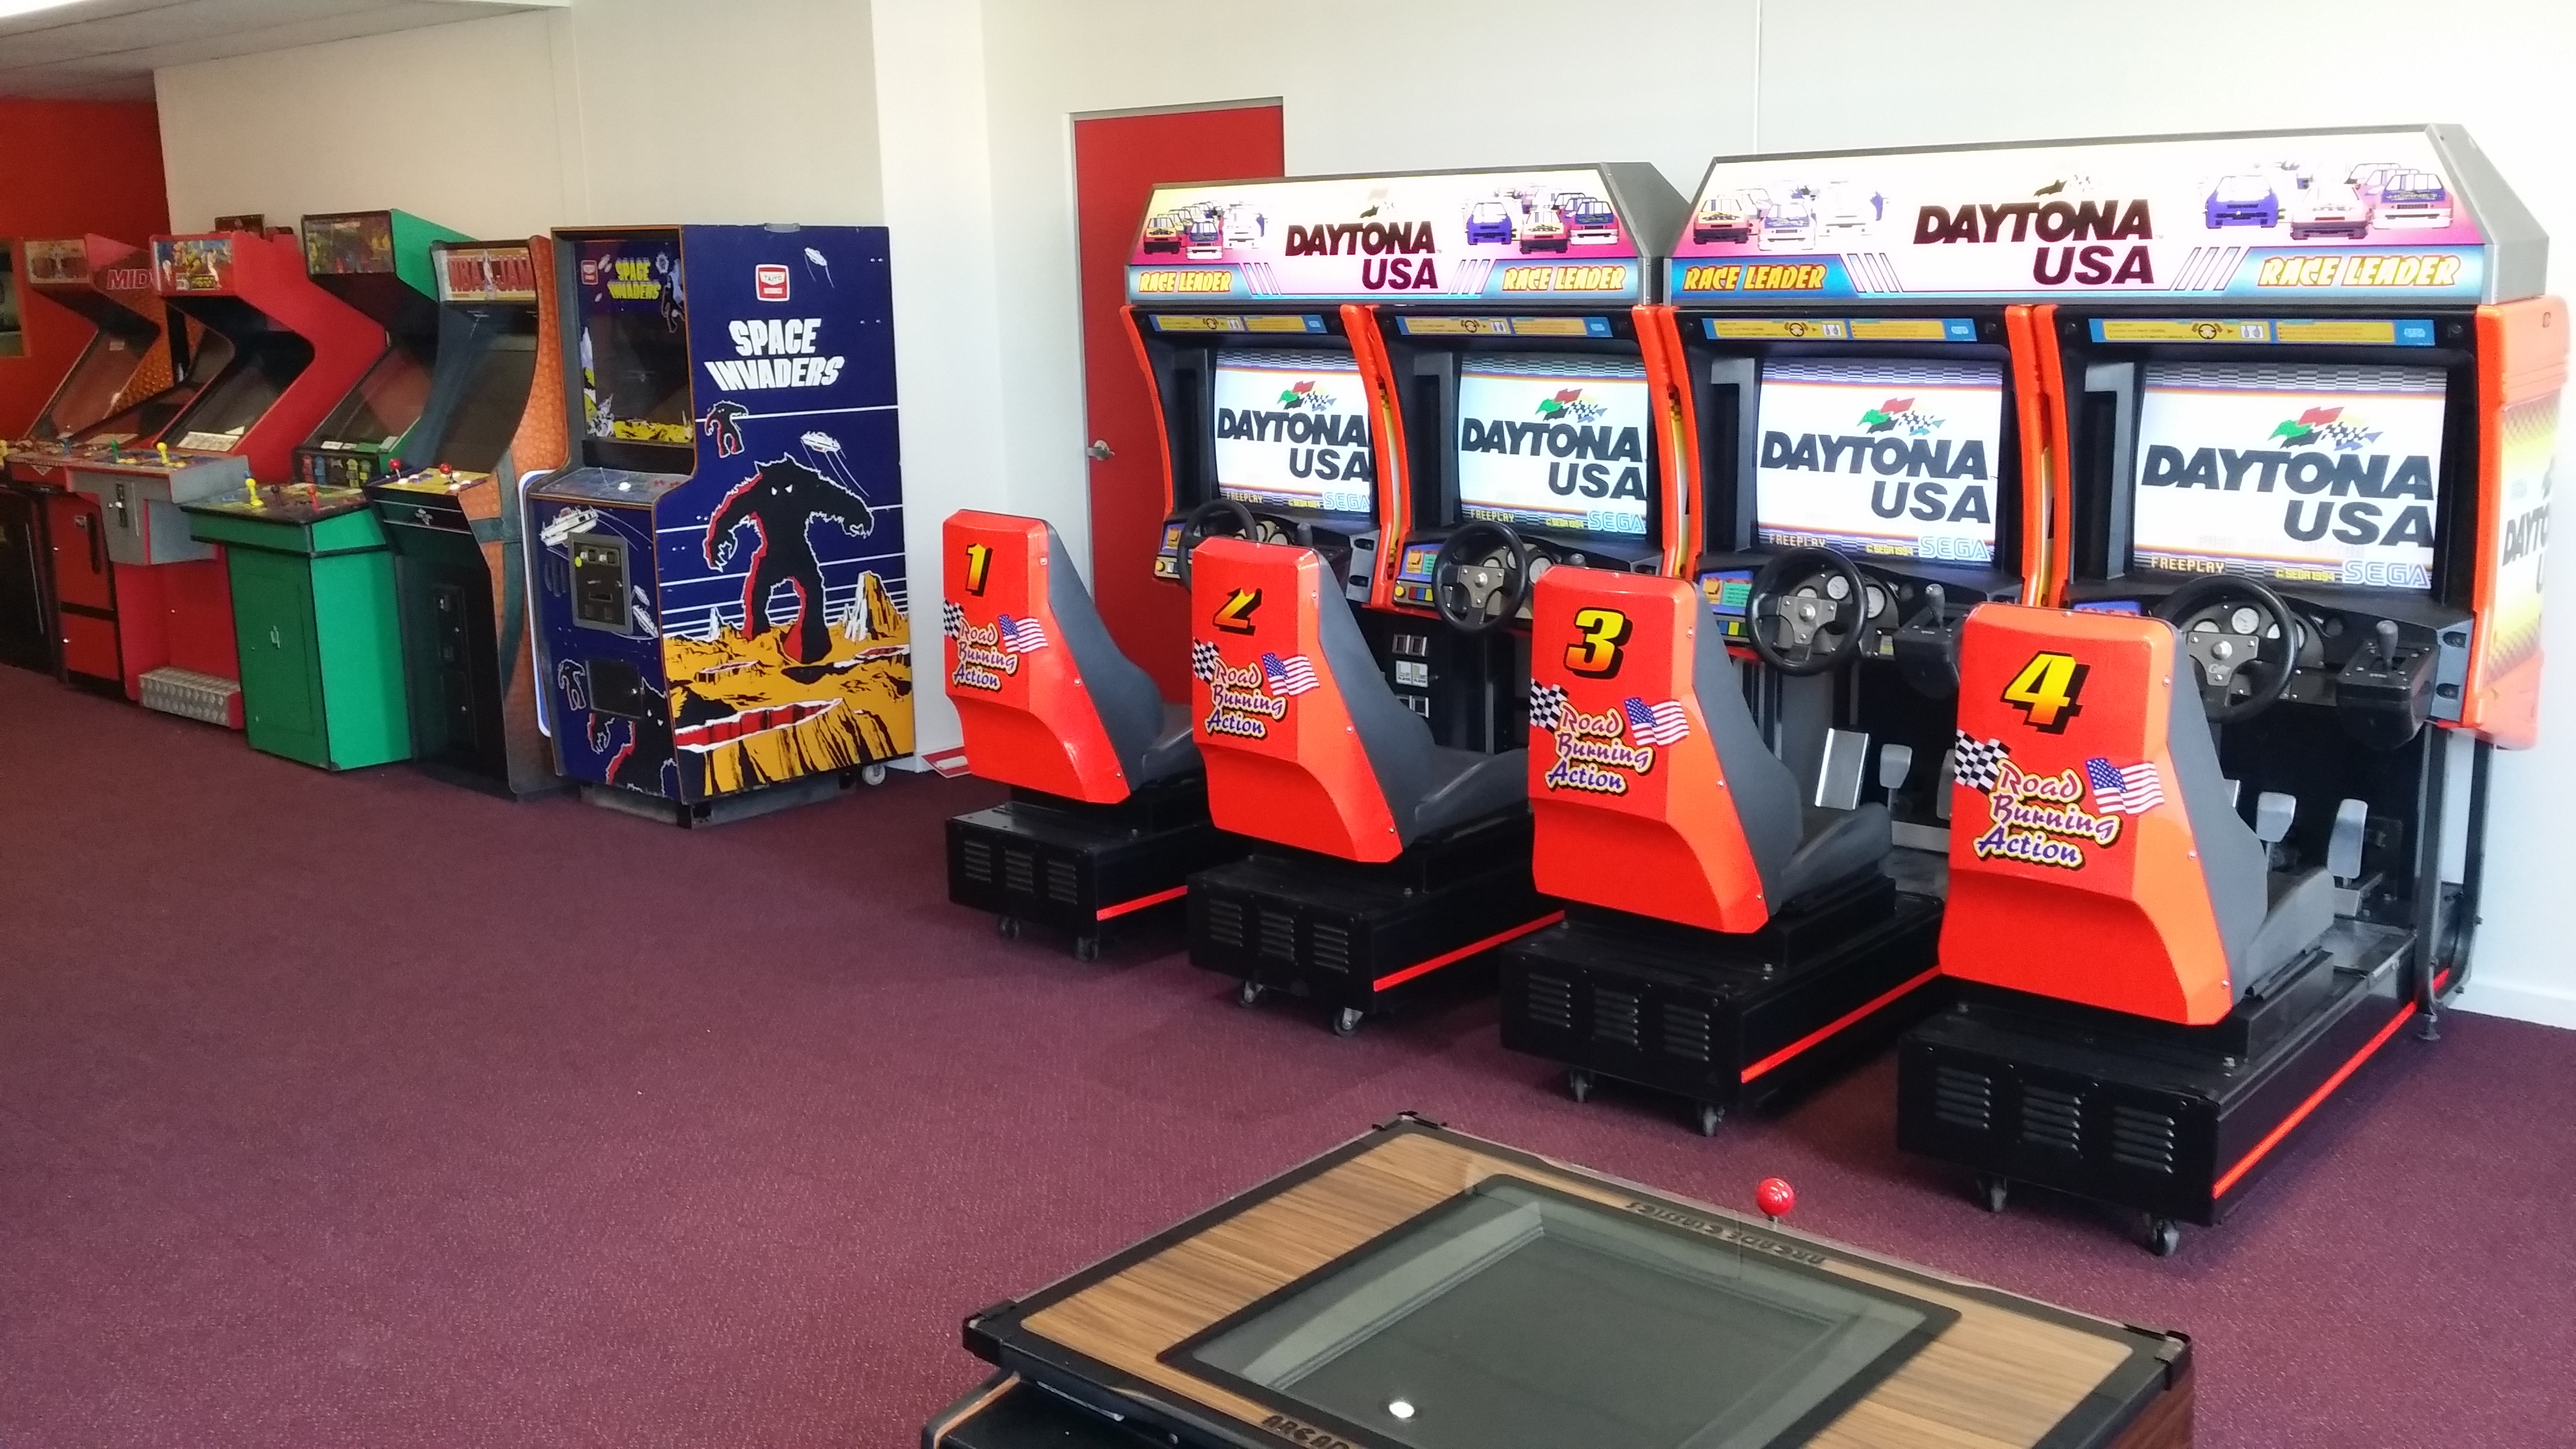 new showroom now open 1567 sydney rd campbellfield arcade classics australia arcade machines. Black Bedroom Furniture Sets. Home Design Ideas